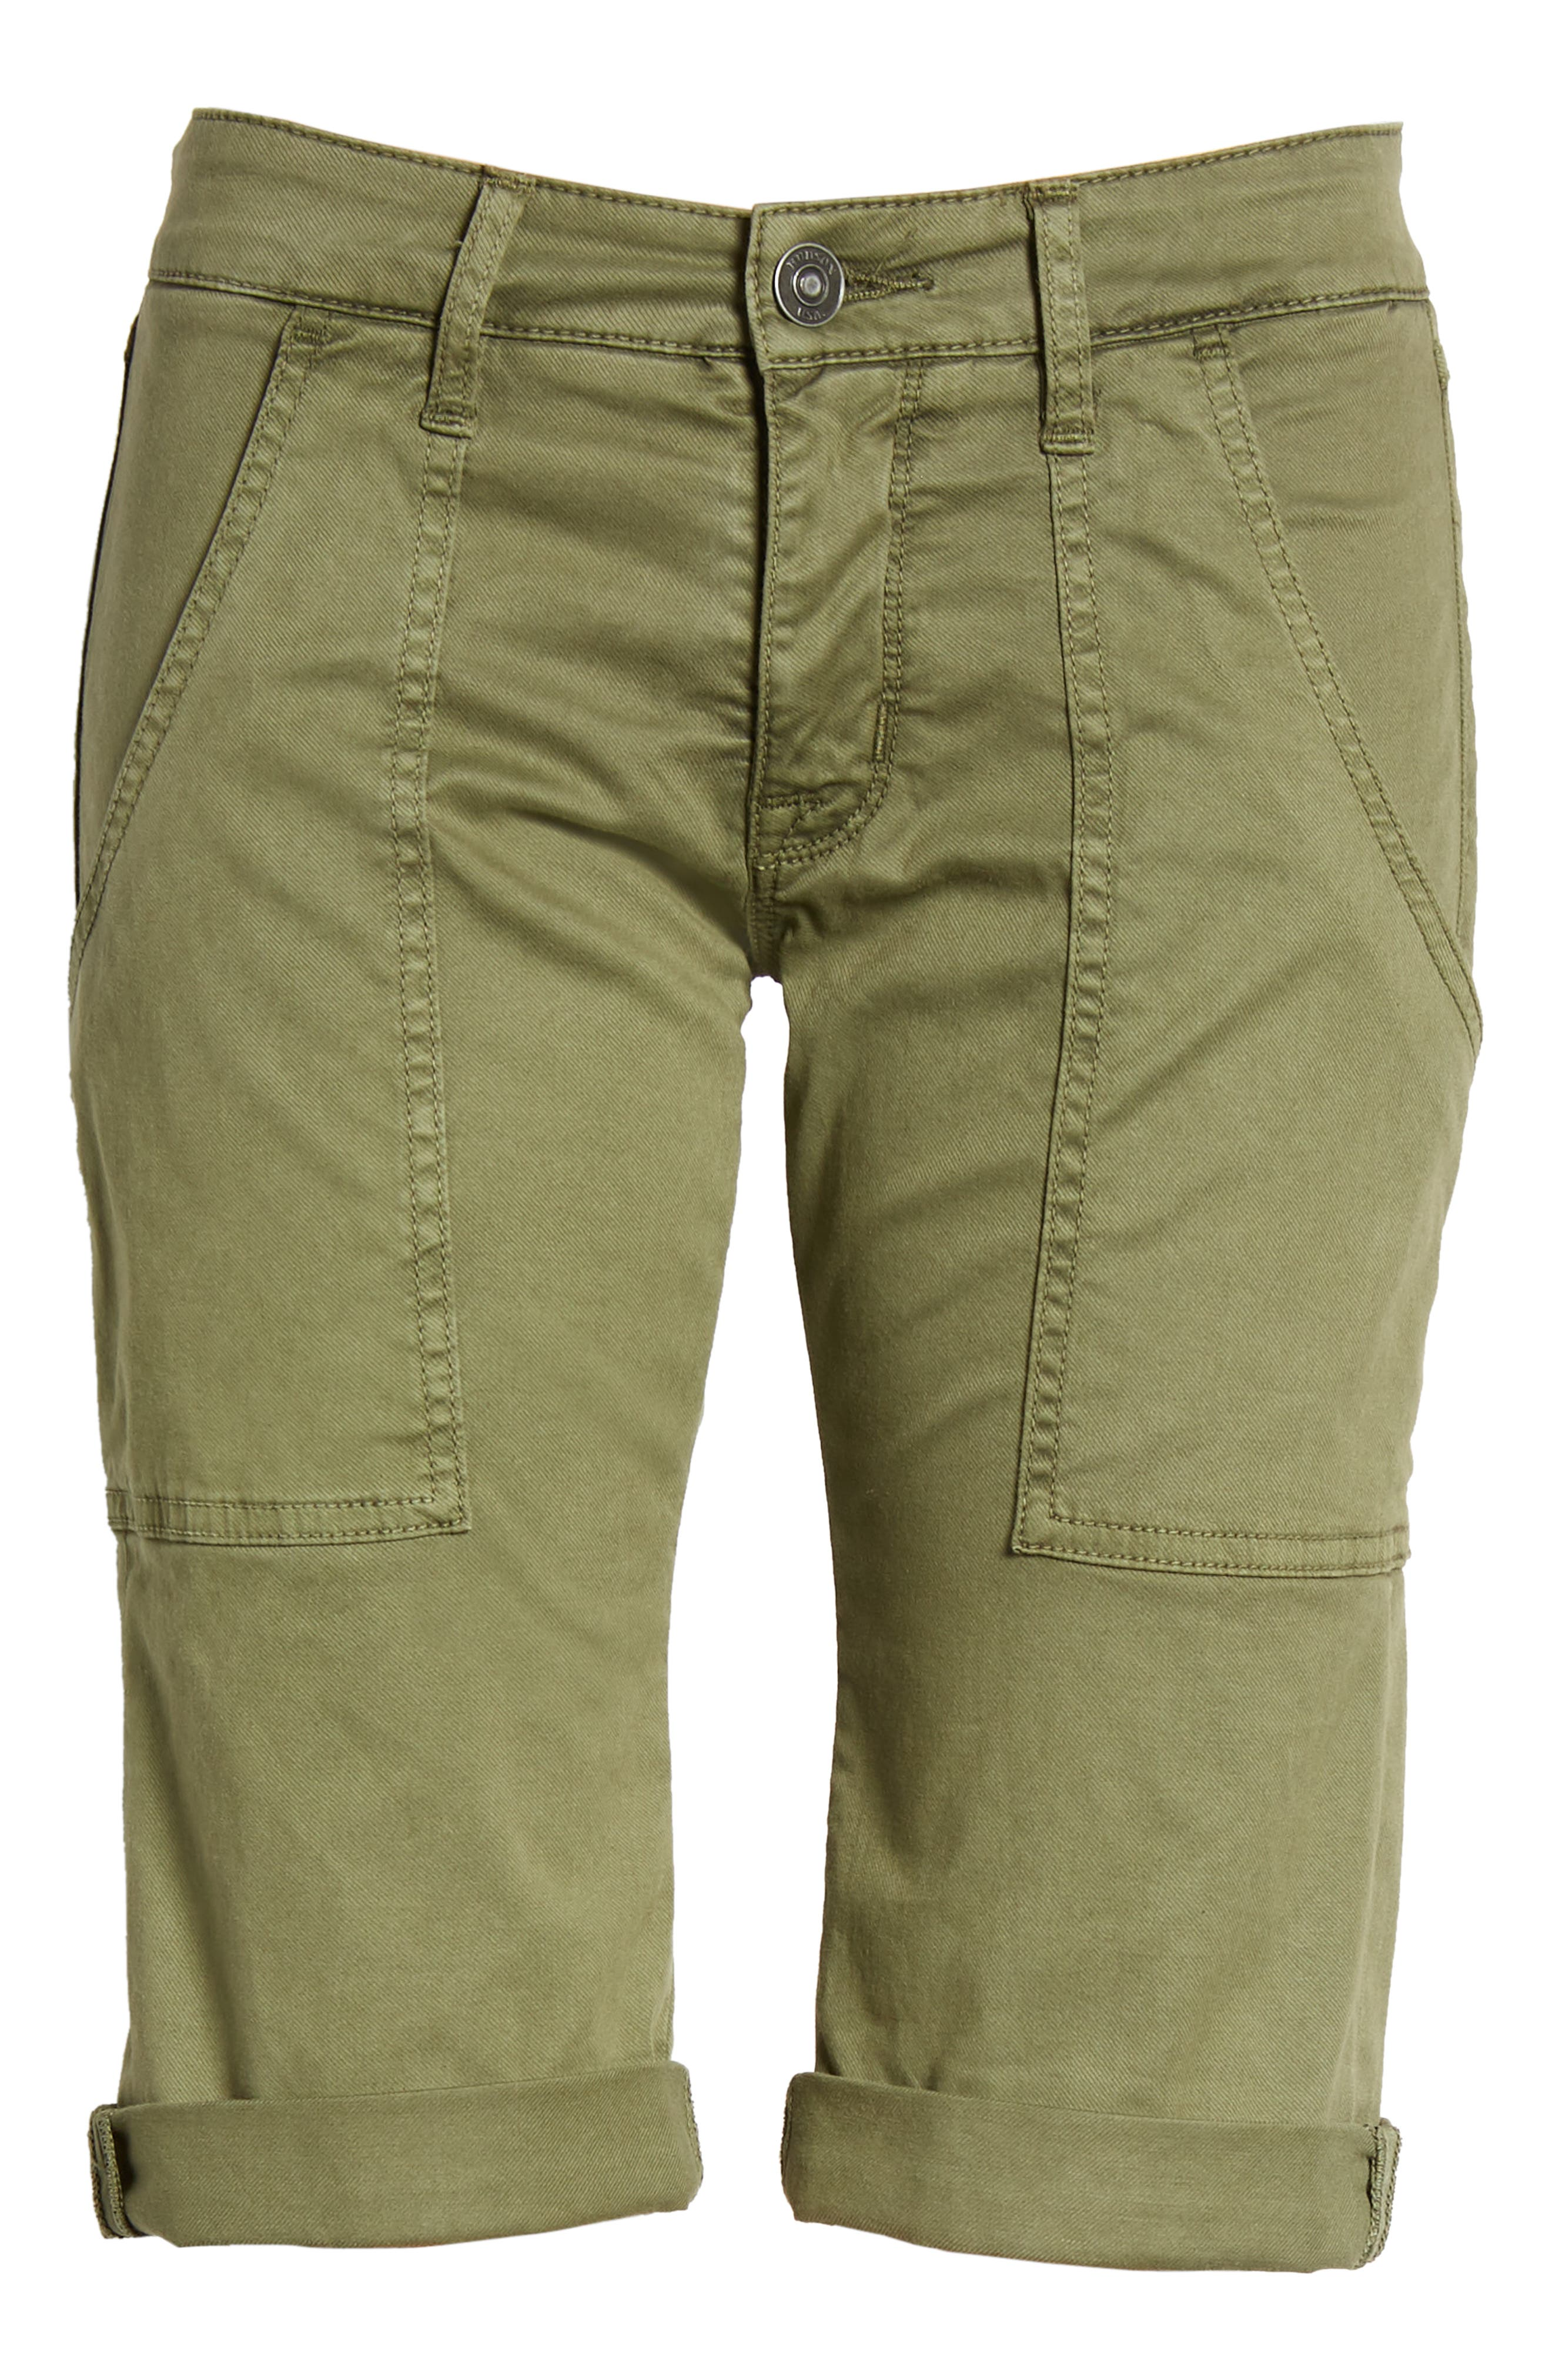 HUDSON JEANS,                             The Leverage Cargo Shorts,                             Alternate thumbnail 6, color,                             363